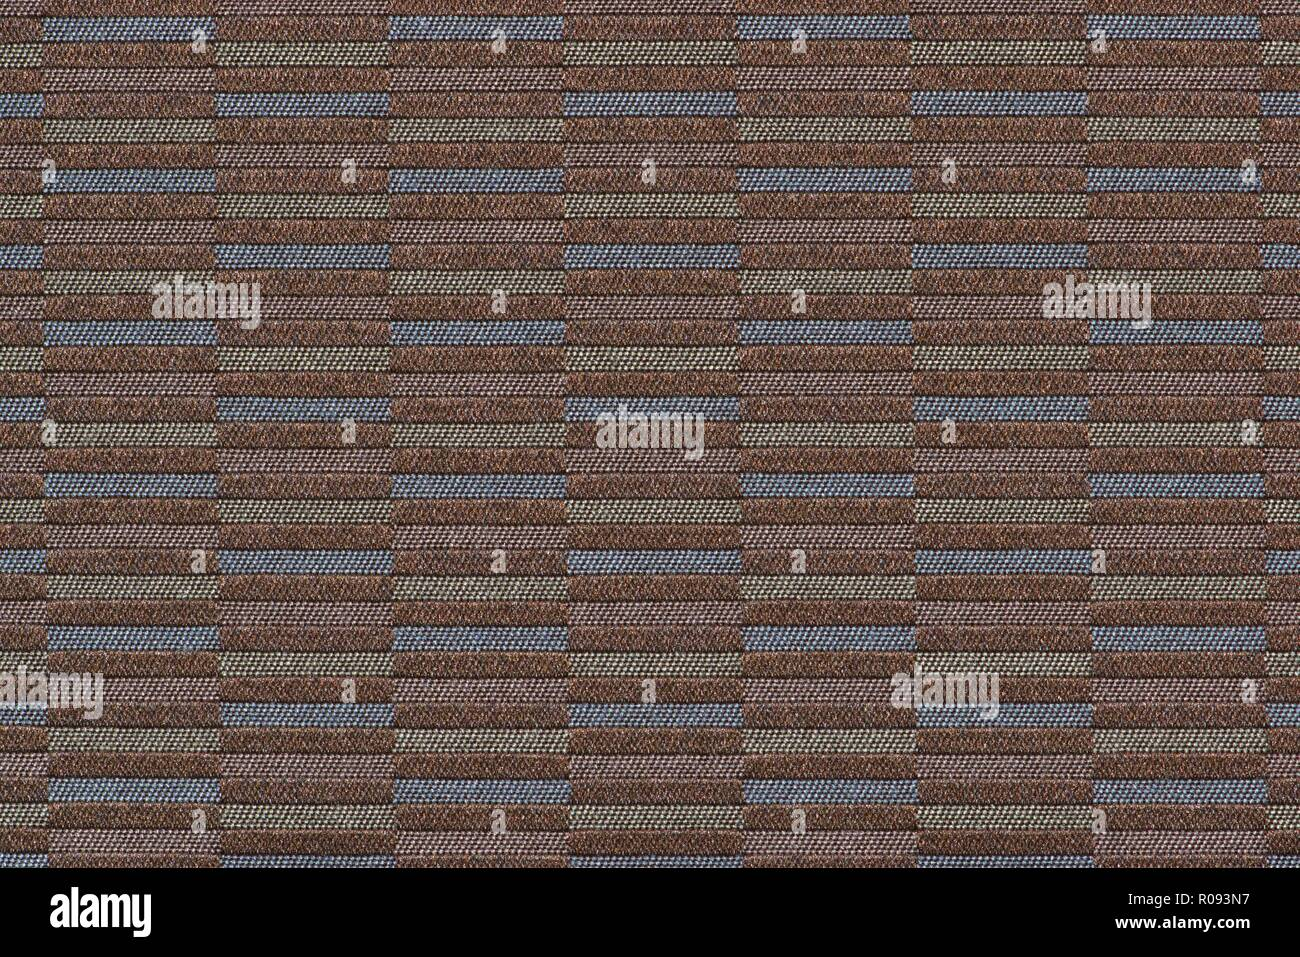 Multi-colored woven section of brown fabric showing horizontal bar patterns. - Stock Image